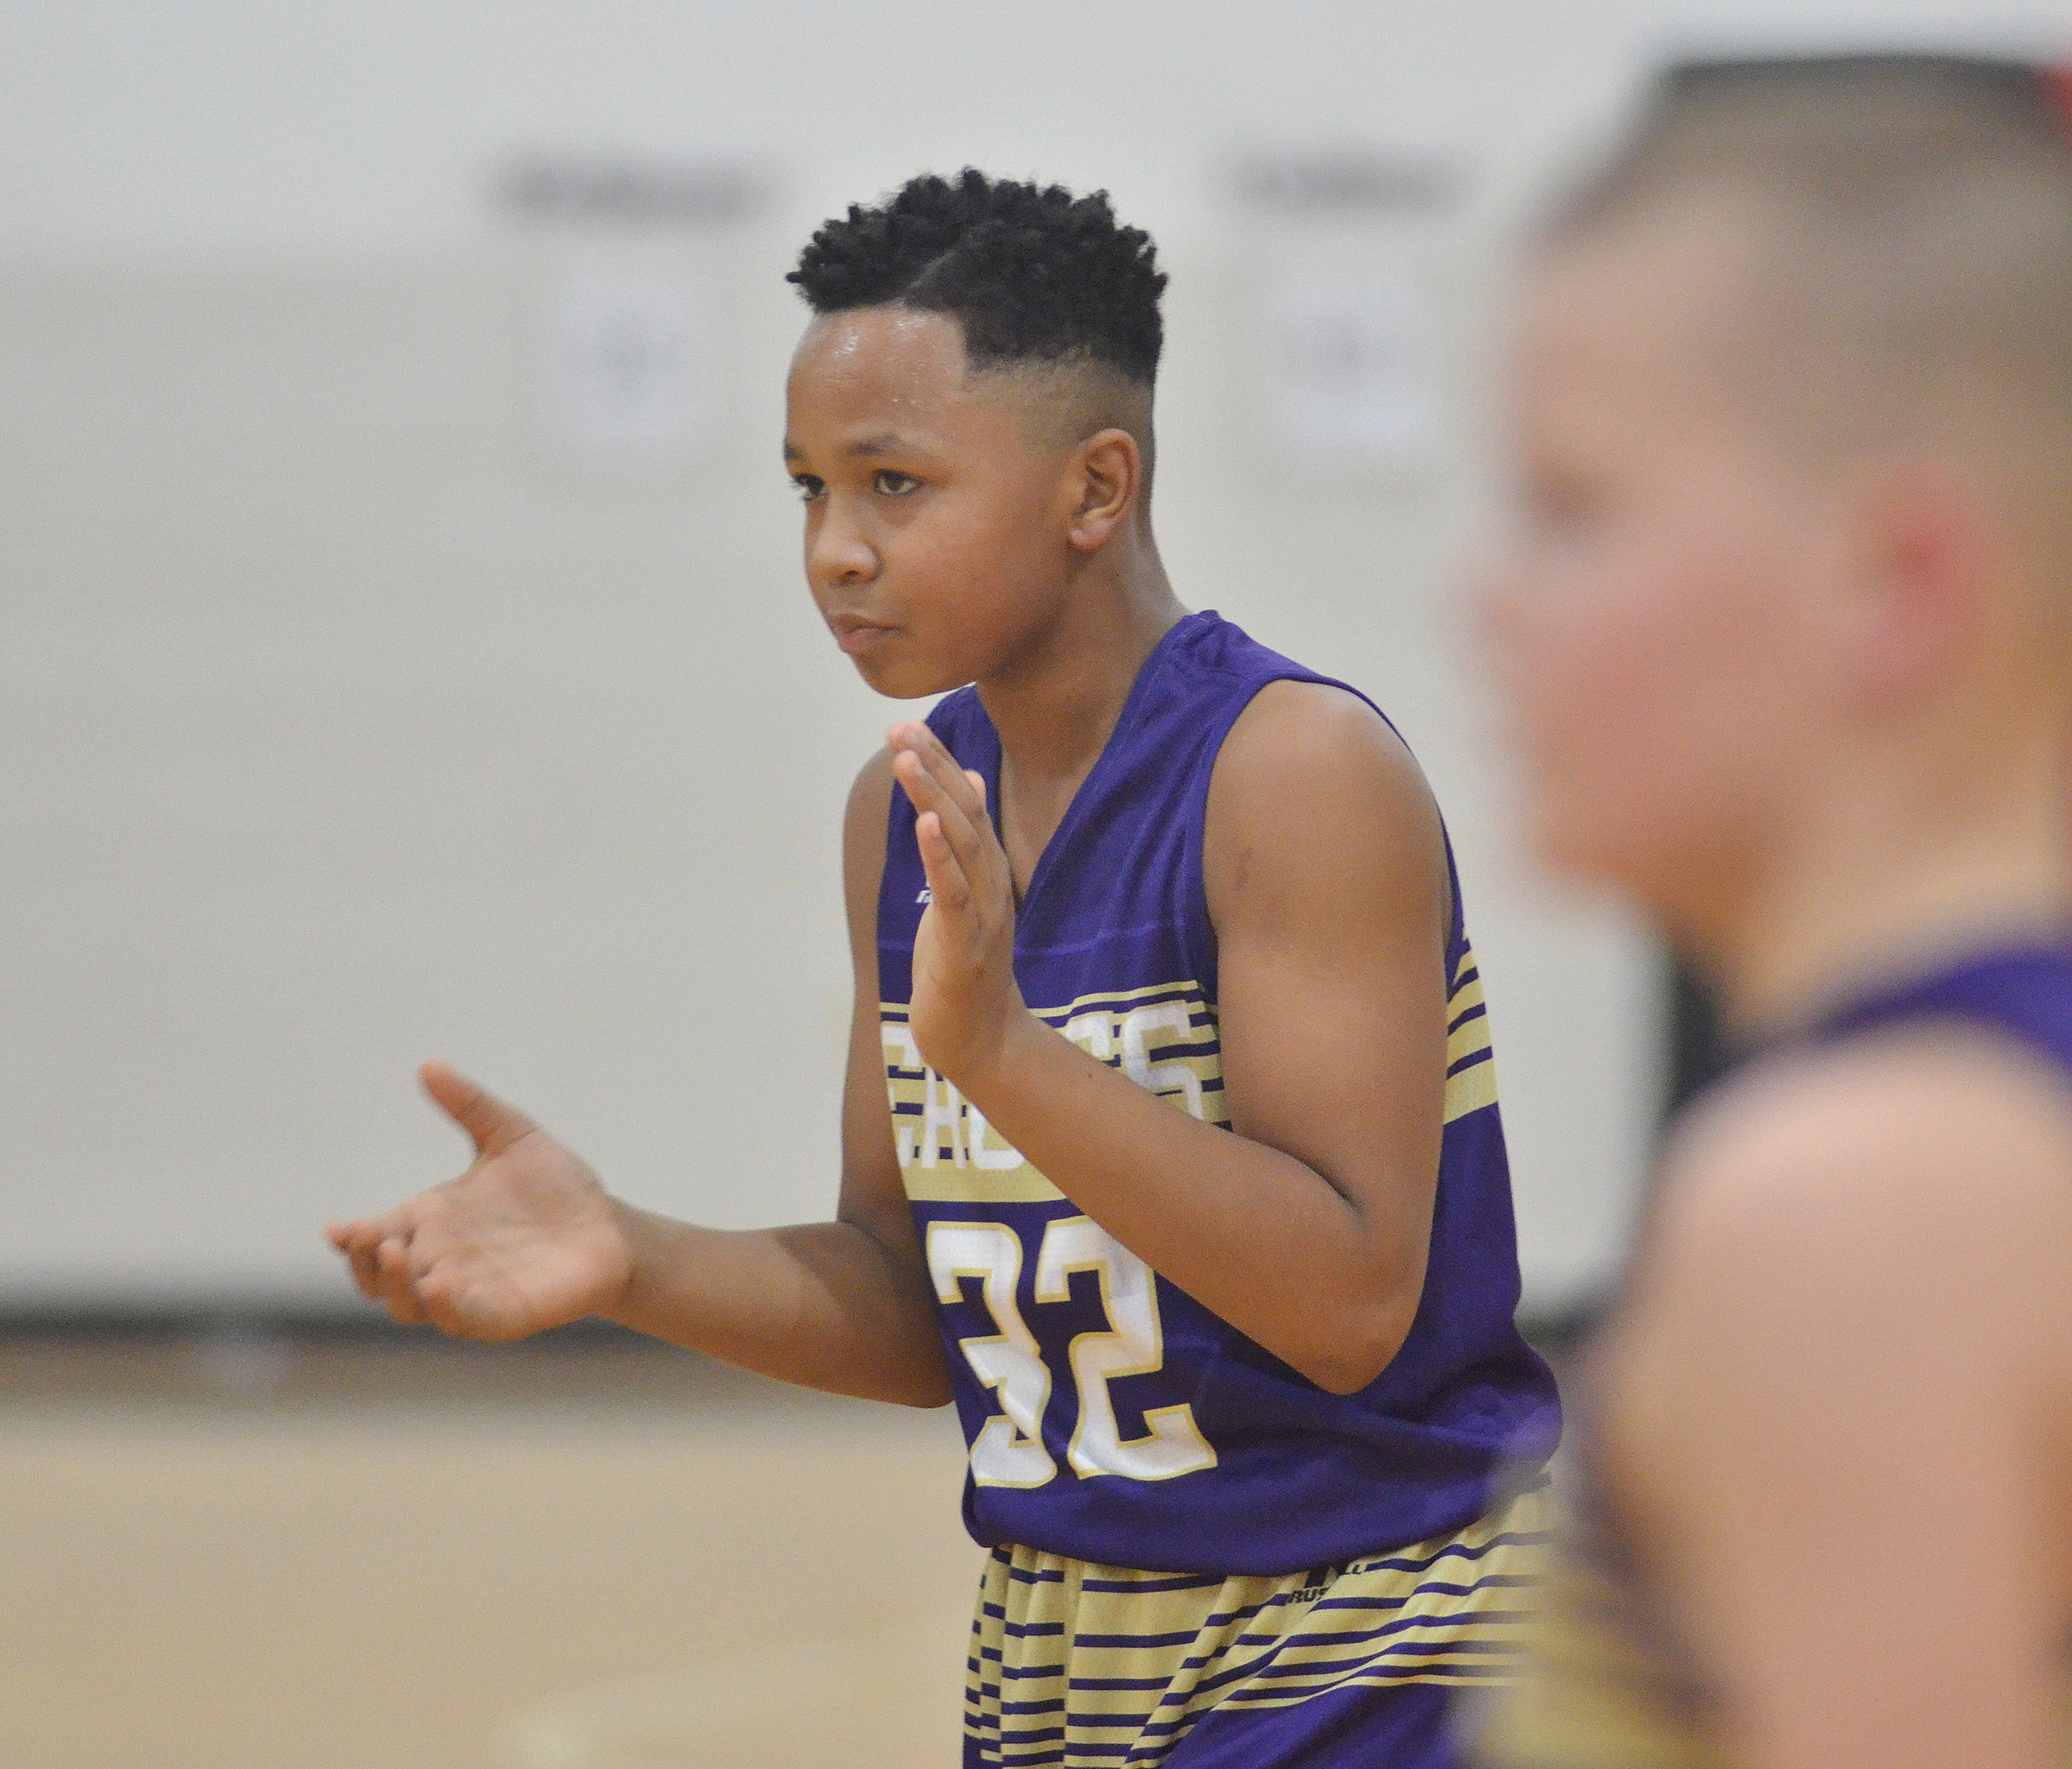 CMS sixth-grader Deondre Weathers clasps as his team scores.